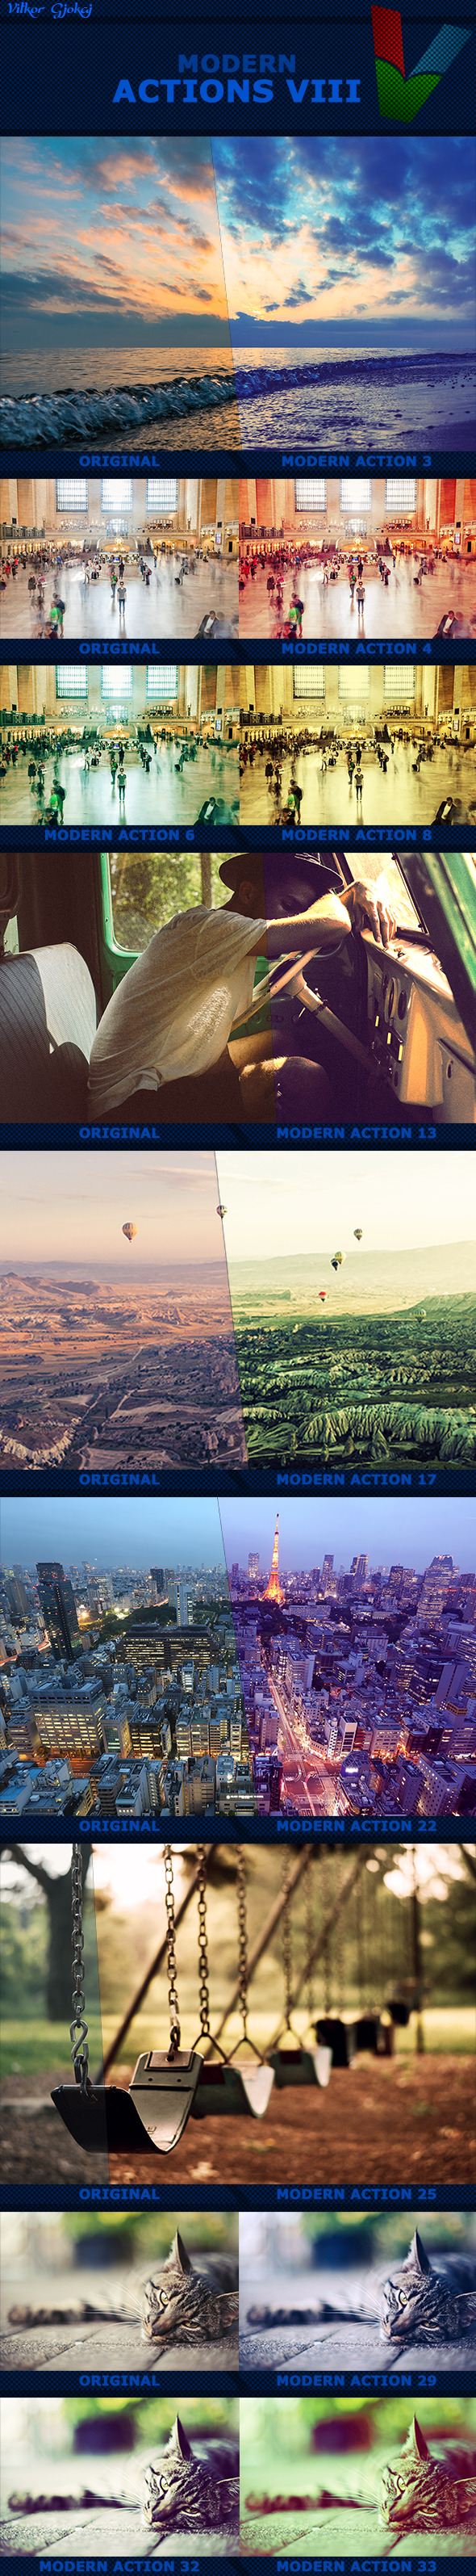 40 Modern Actions VIII - Photo Effects Actions